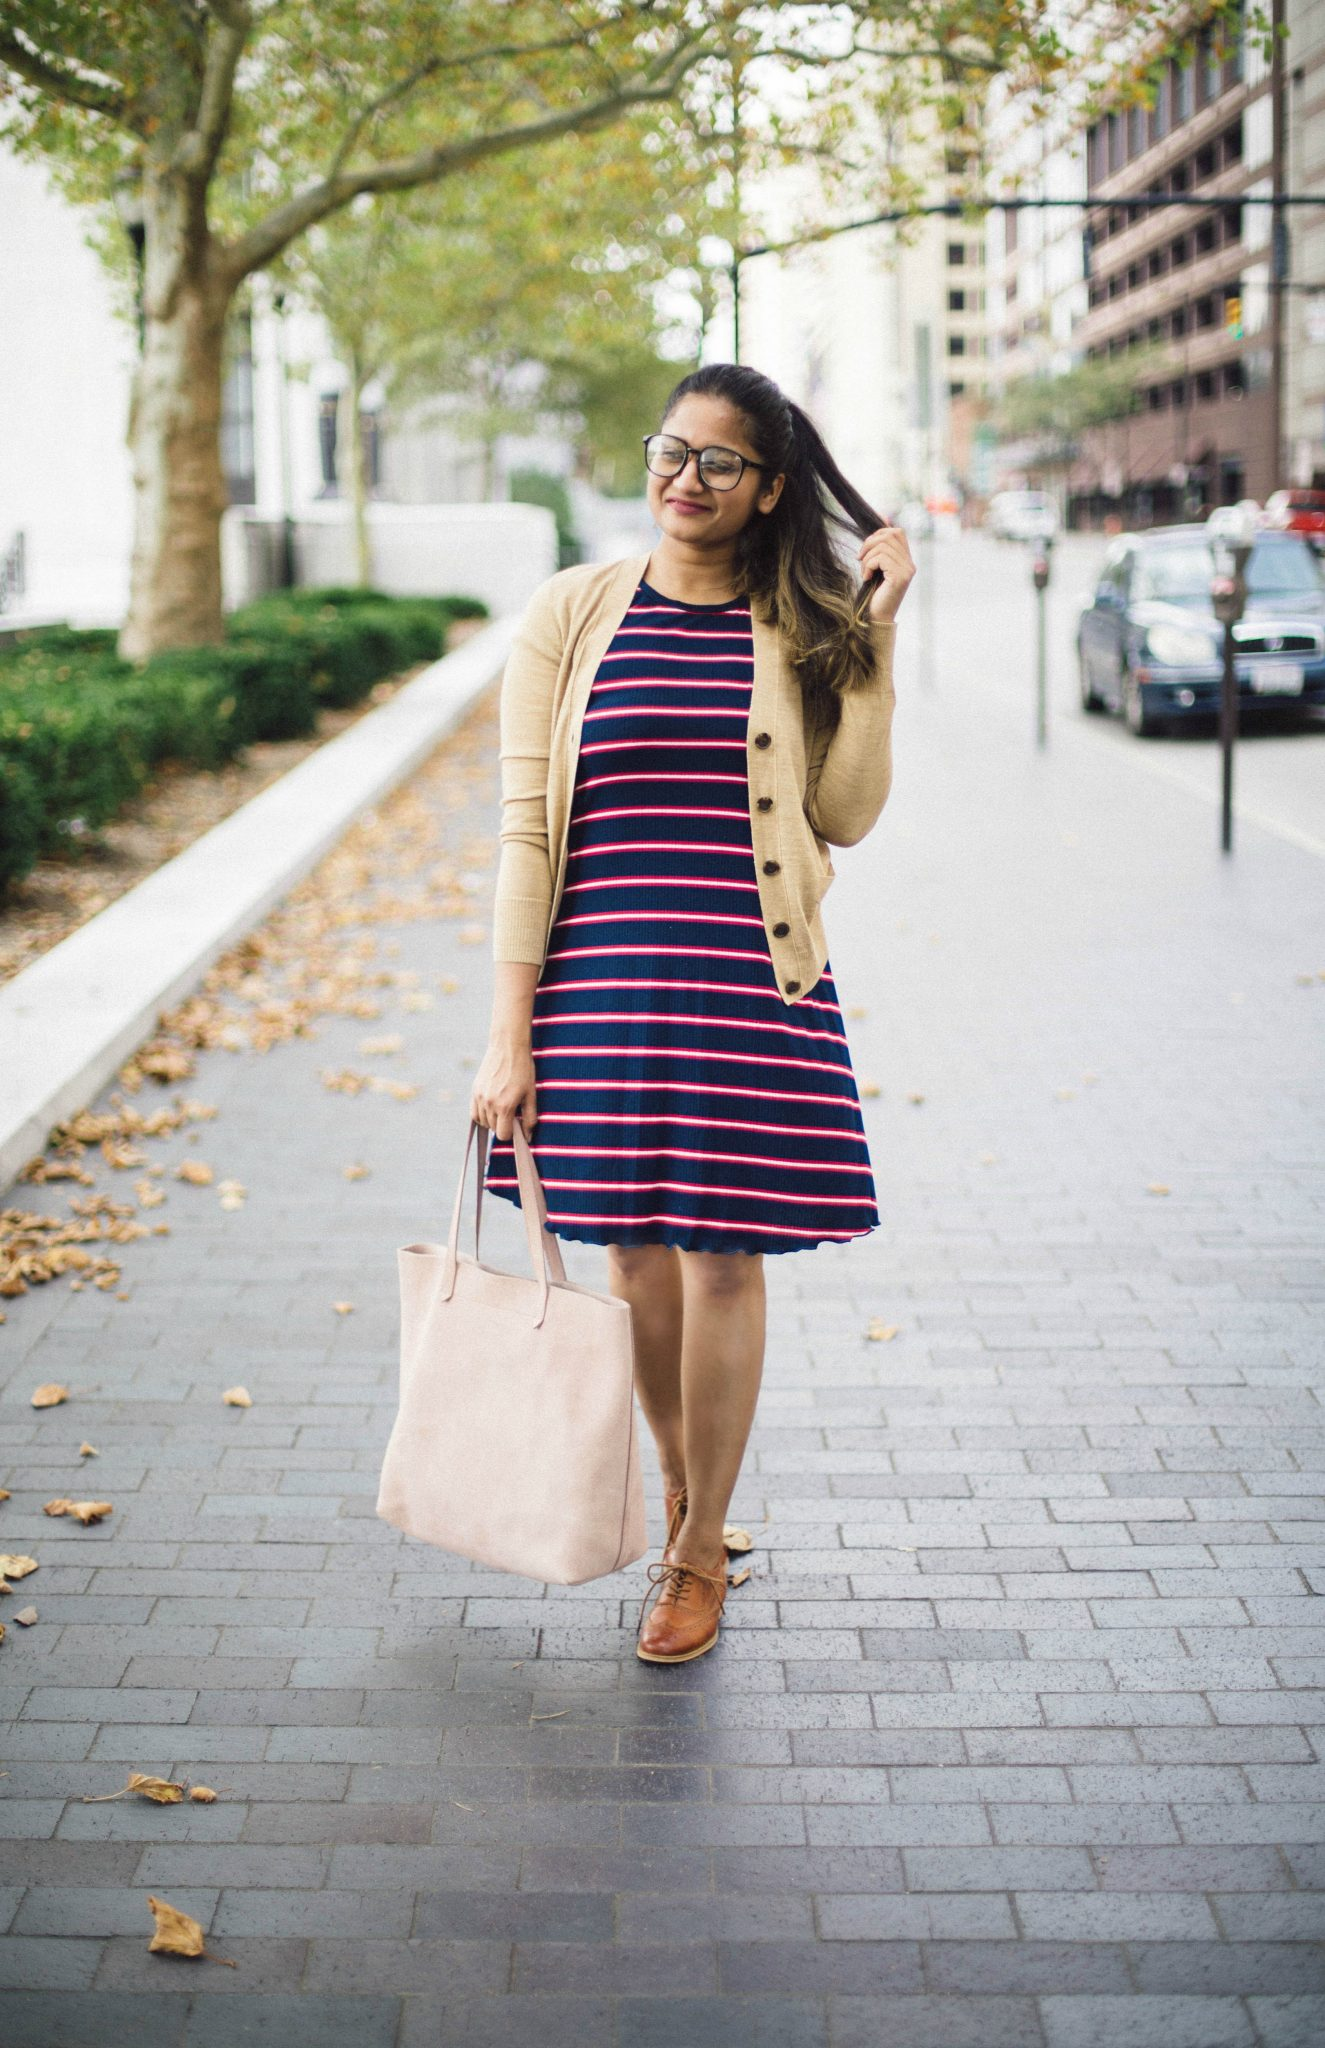 Target-mossimo-knit-ruffle-t-shirt-dress - Back To School Outfits For College Students featured by Ohio modest fashion blogger, Dreaming Loud